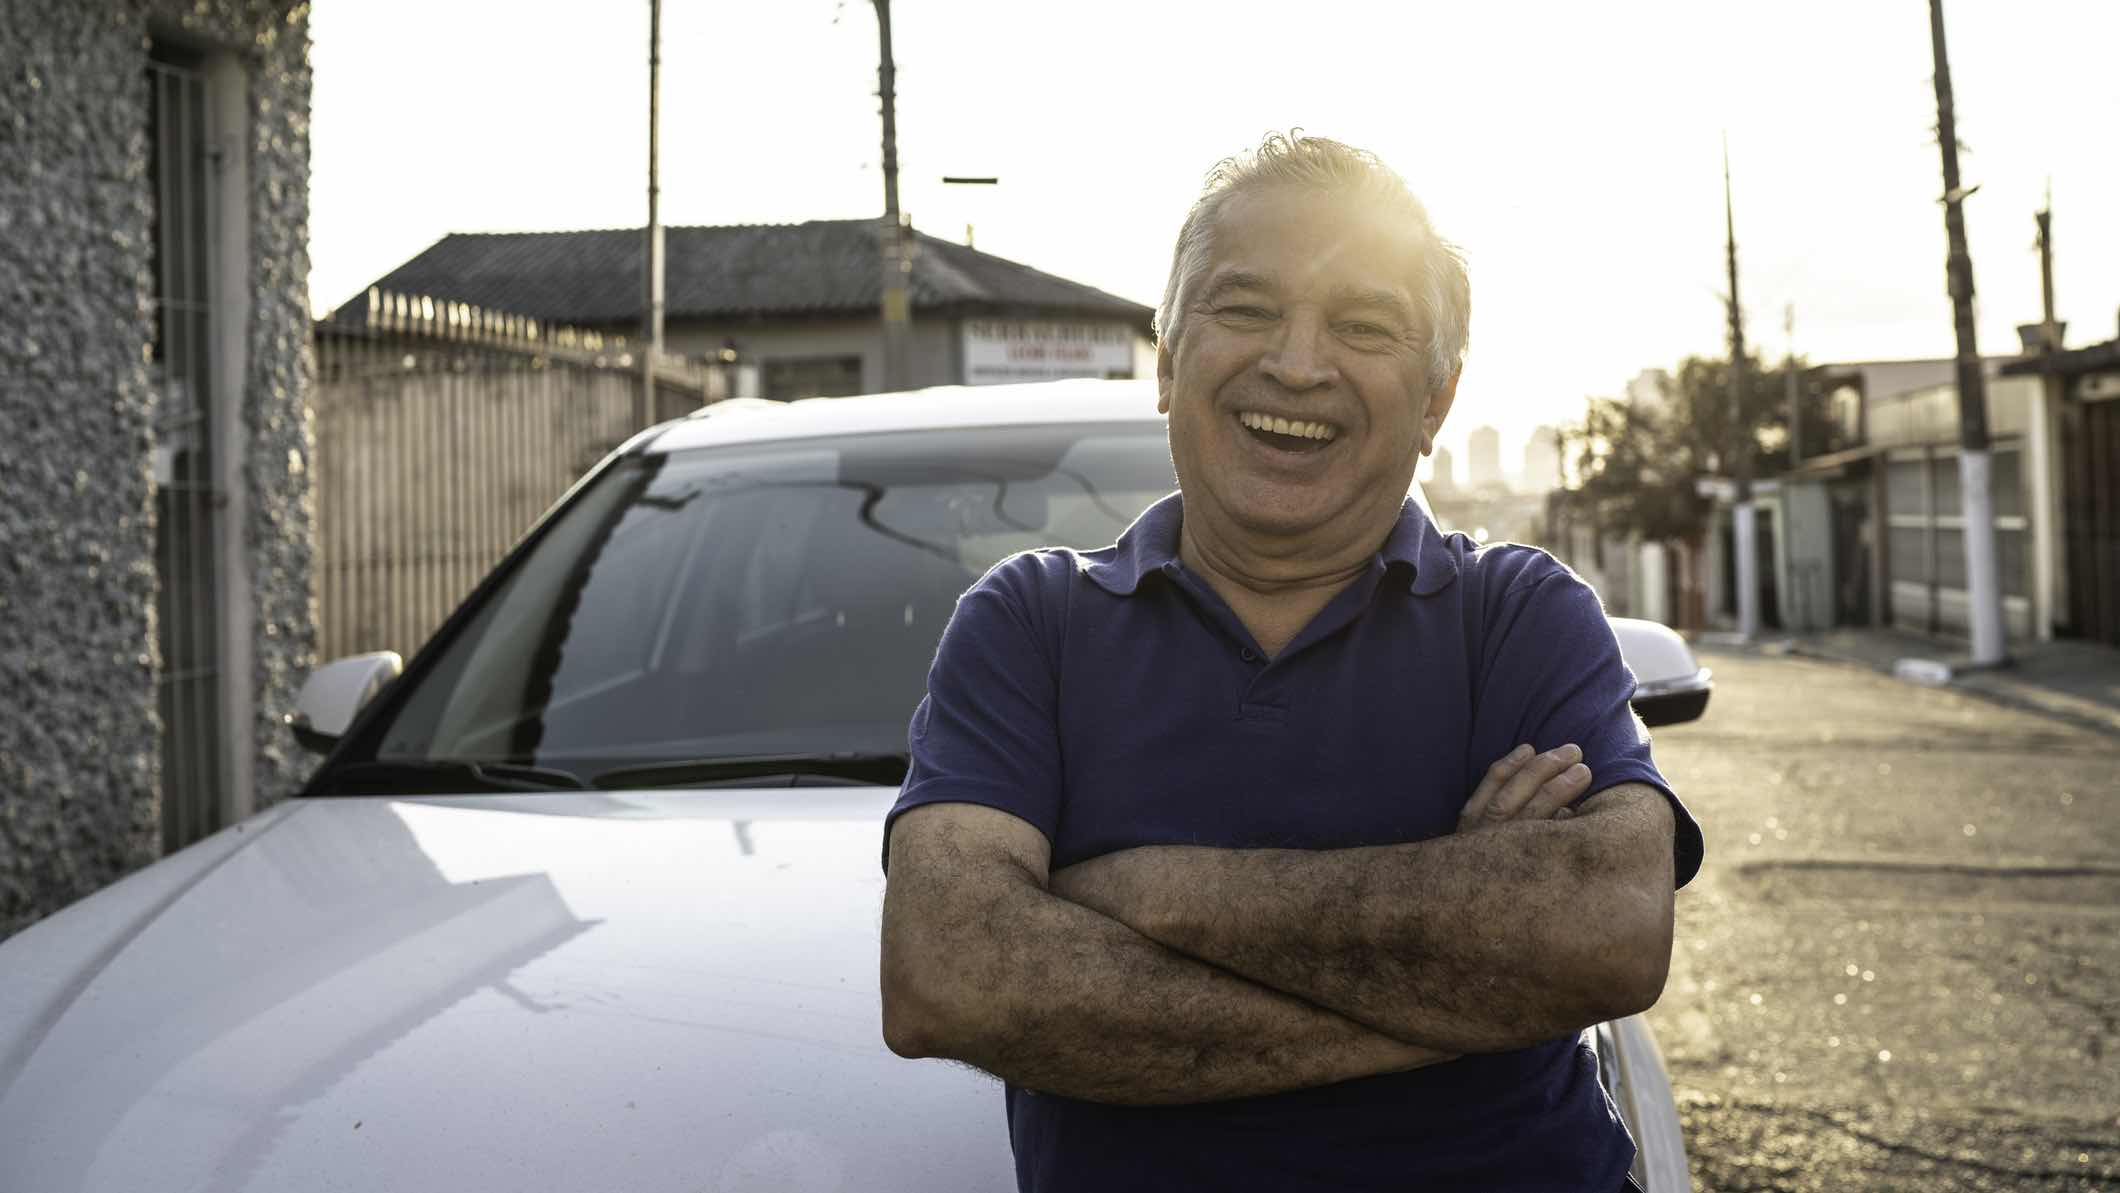 Man smiling in front of car with insurance